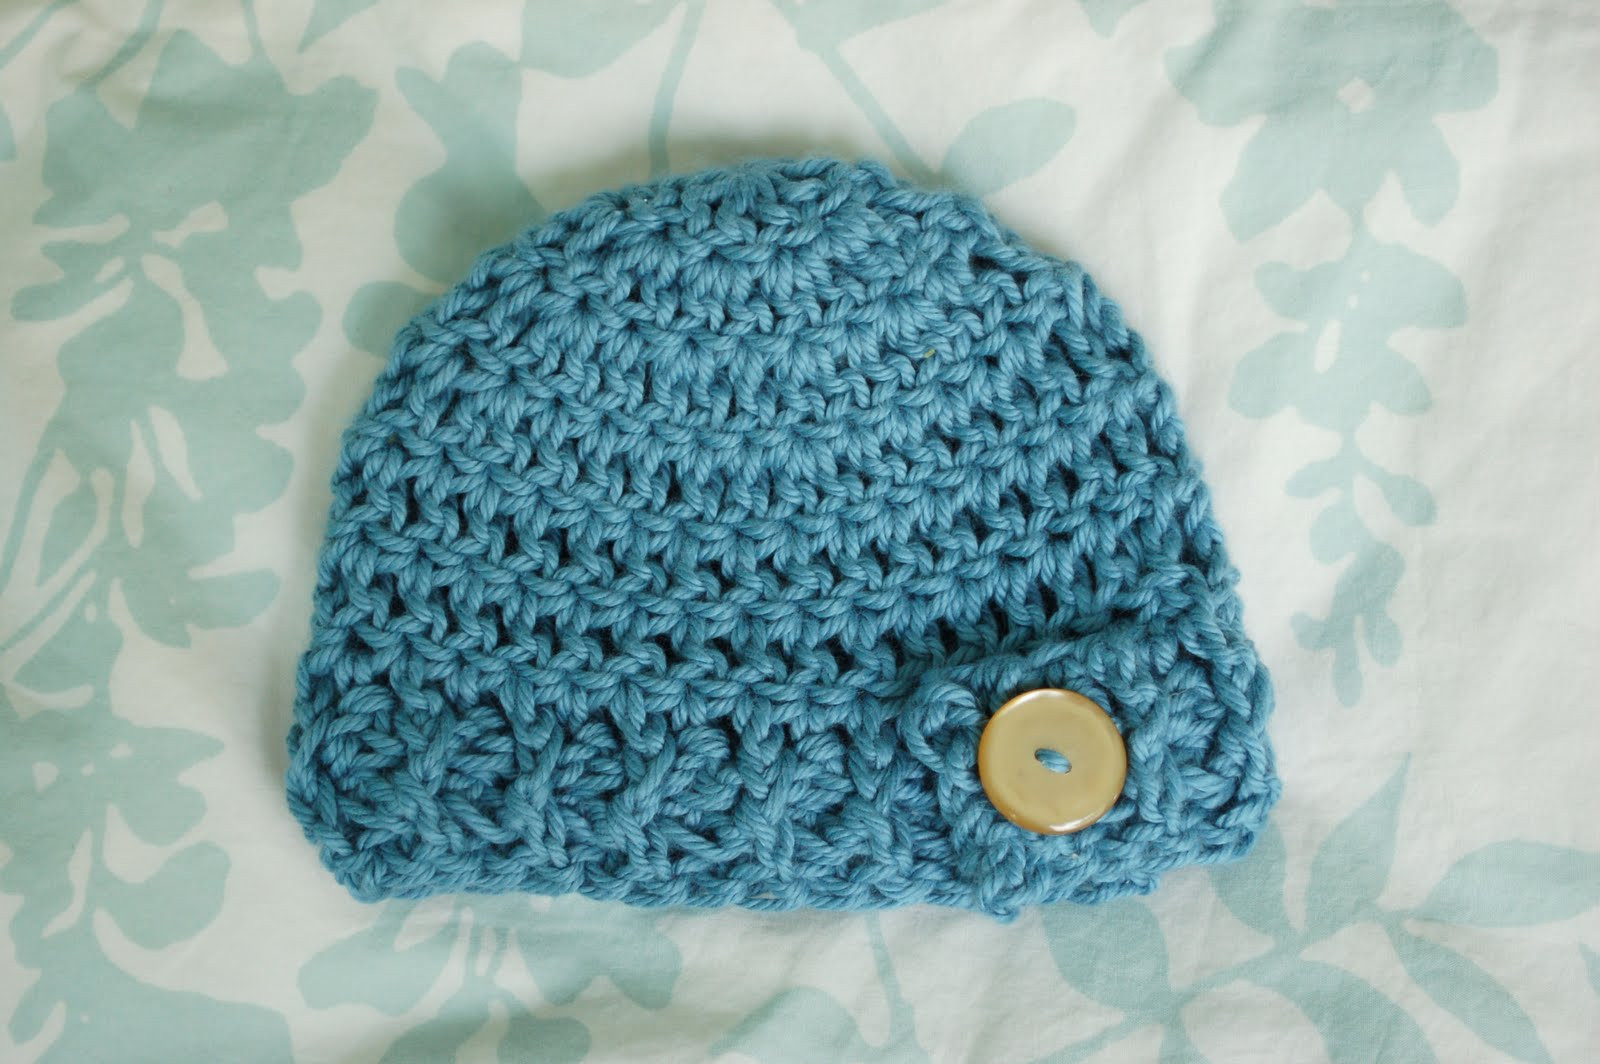 Crochet Newborn Beanie Unique Alli Crafts Free Pattern button Flap Beanie Newborn Of Luxury 43 Pictures Crochet Newborn Beanie